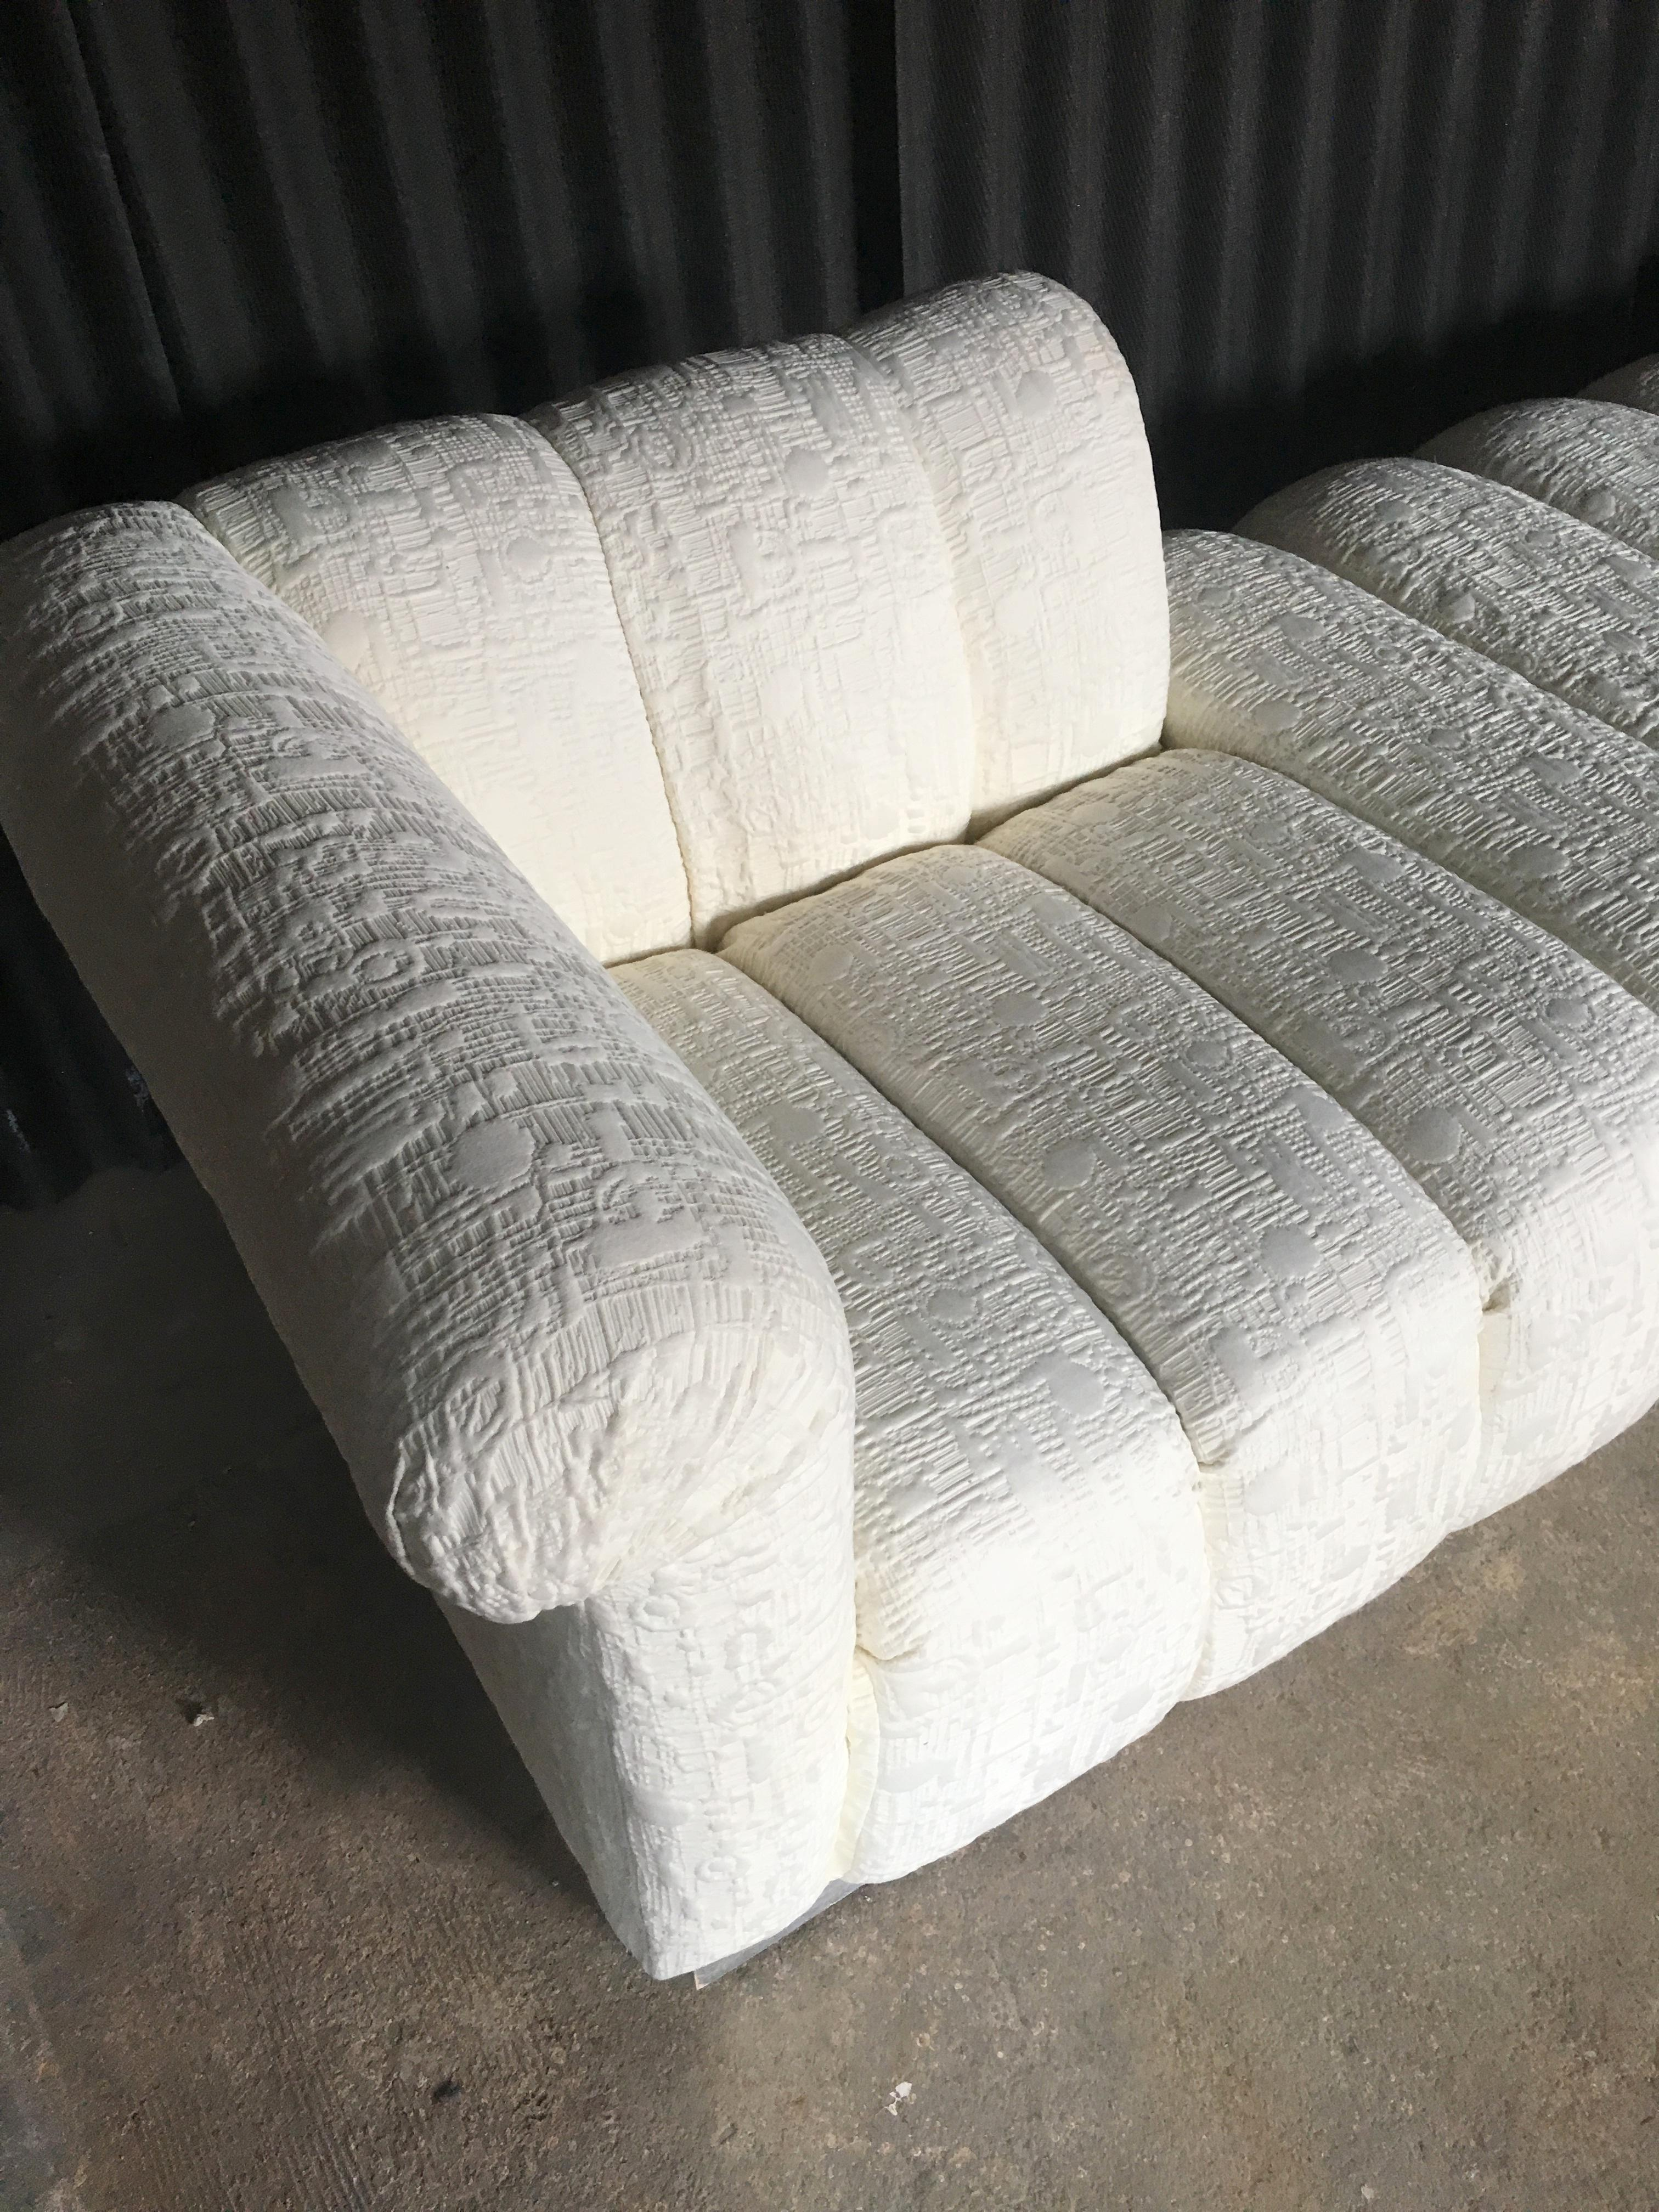 Fabulous Over Sized Channel Tufted Chaise Or Lounge Fainting Couch At 1stdibs